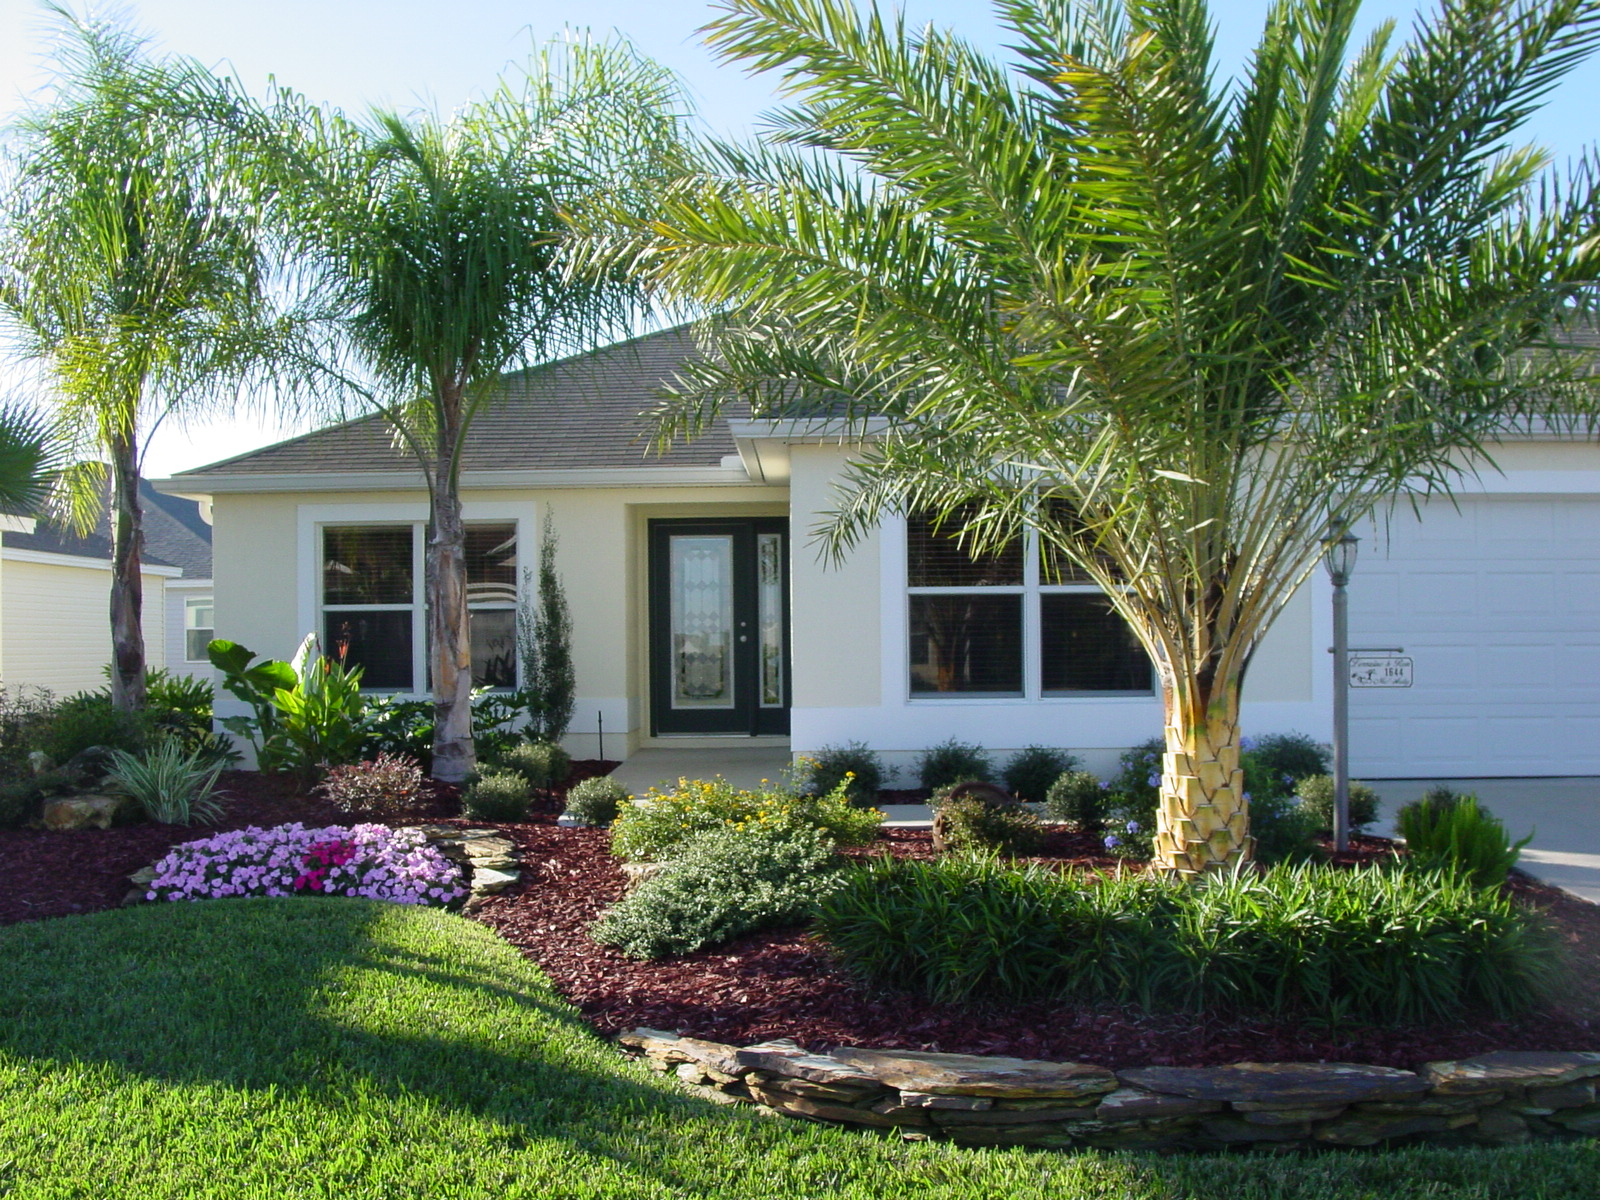 Florida garden landscape ideas photograph rons landscaping for Home garden design